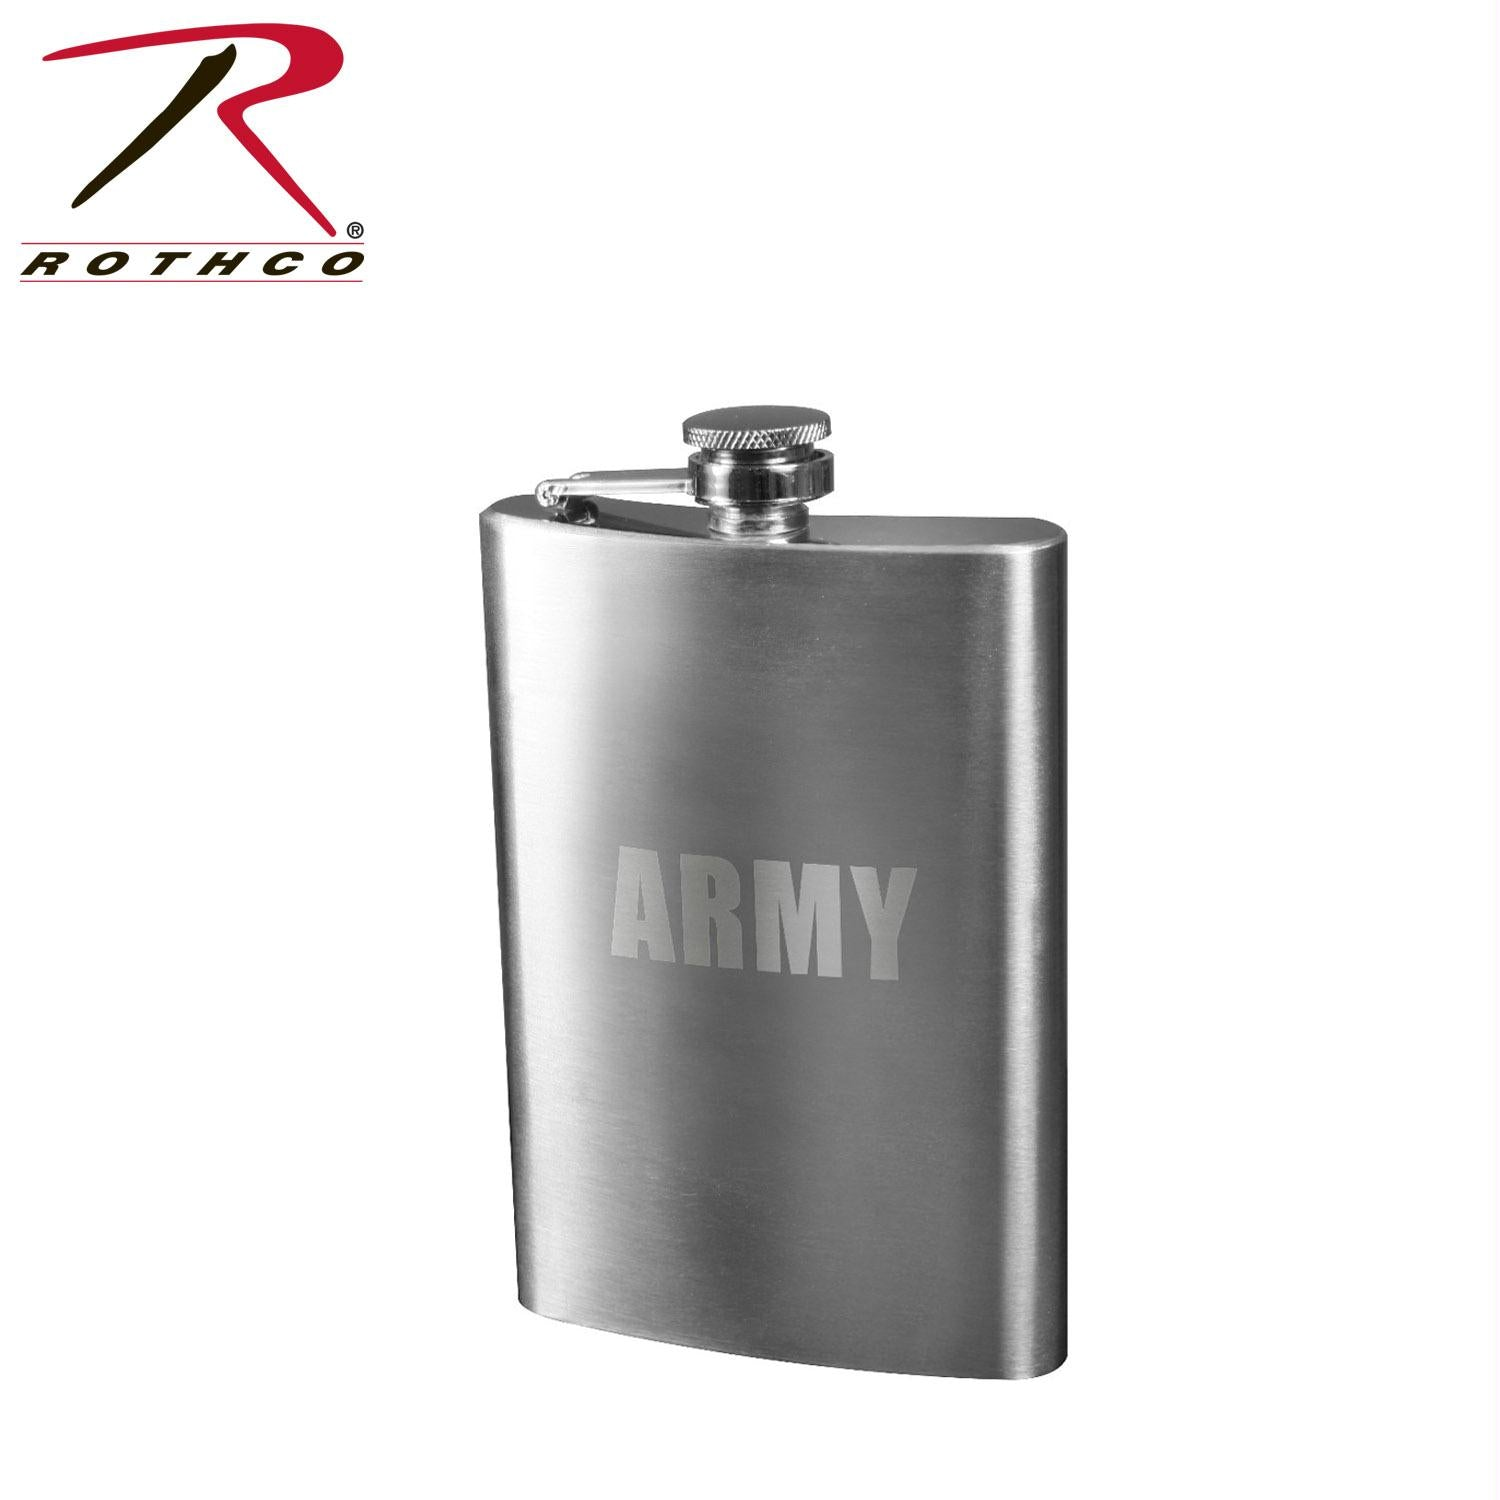 Rothco Engraved Stainless Steel Flasks